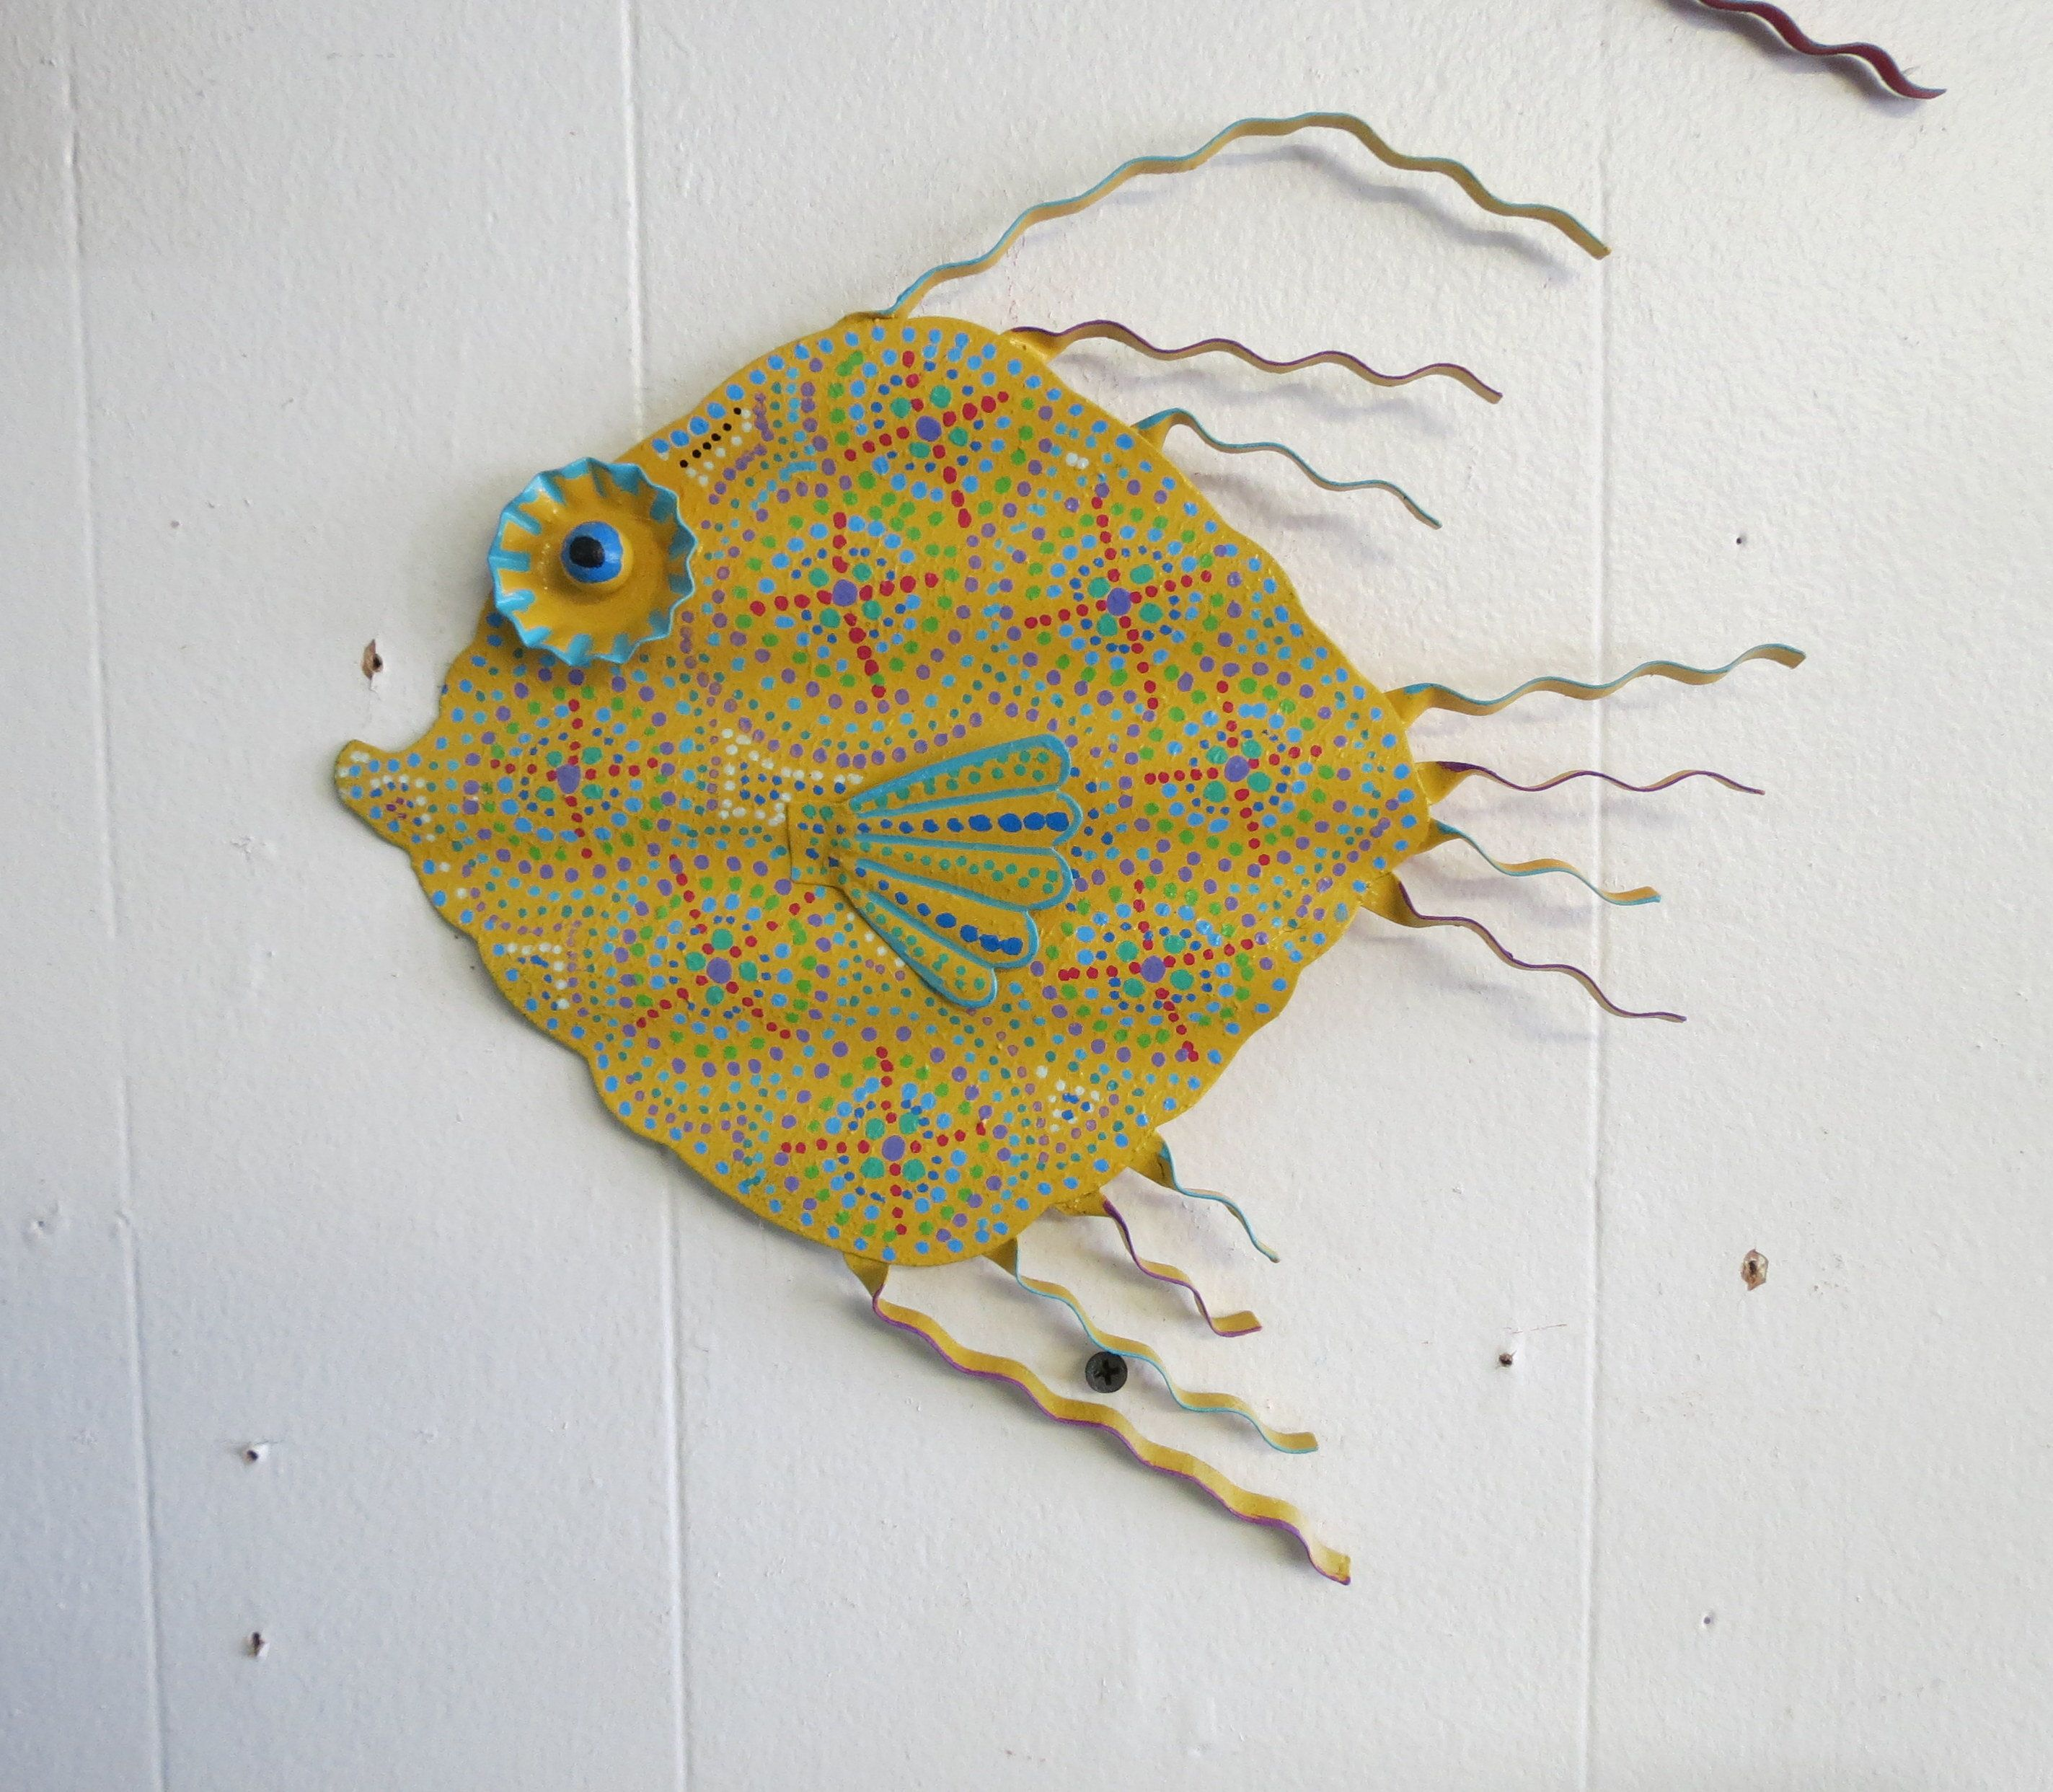 Awesome Ceramic Fish Wall Decor Pictures Inspiration - The Wall Art ...